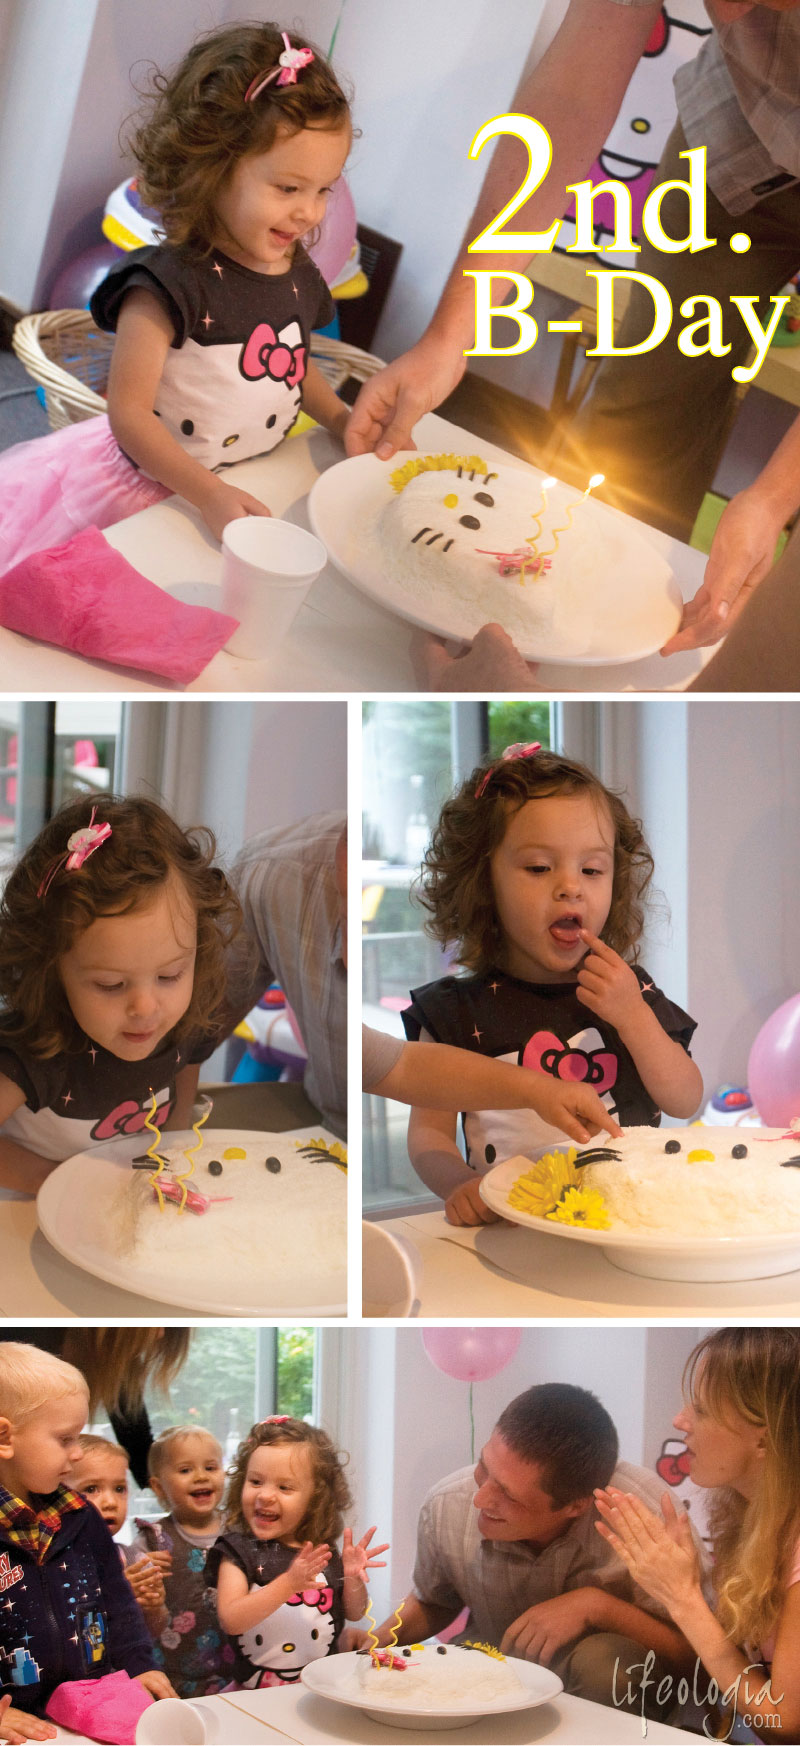 gabriella-bday4-hello-kitty-theme